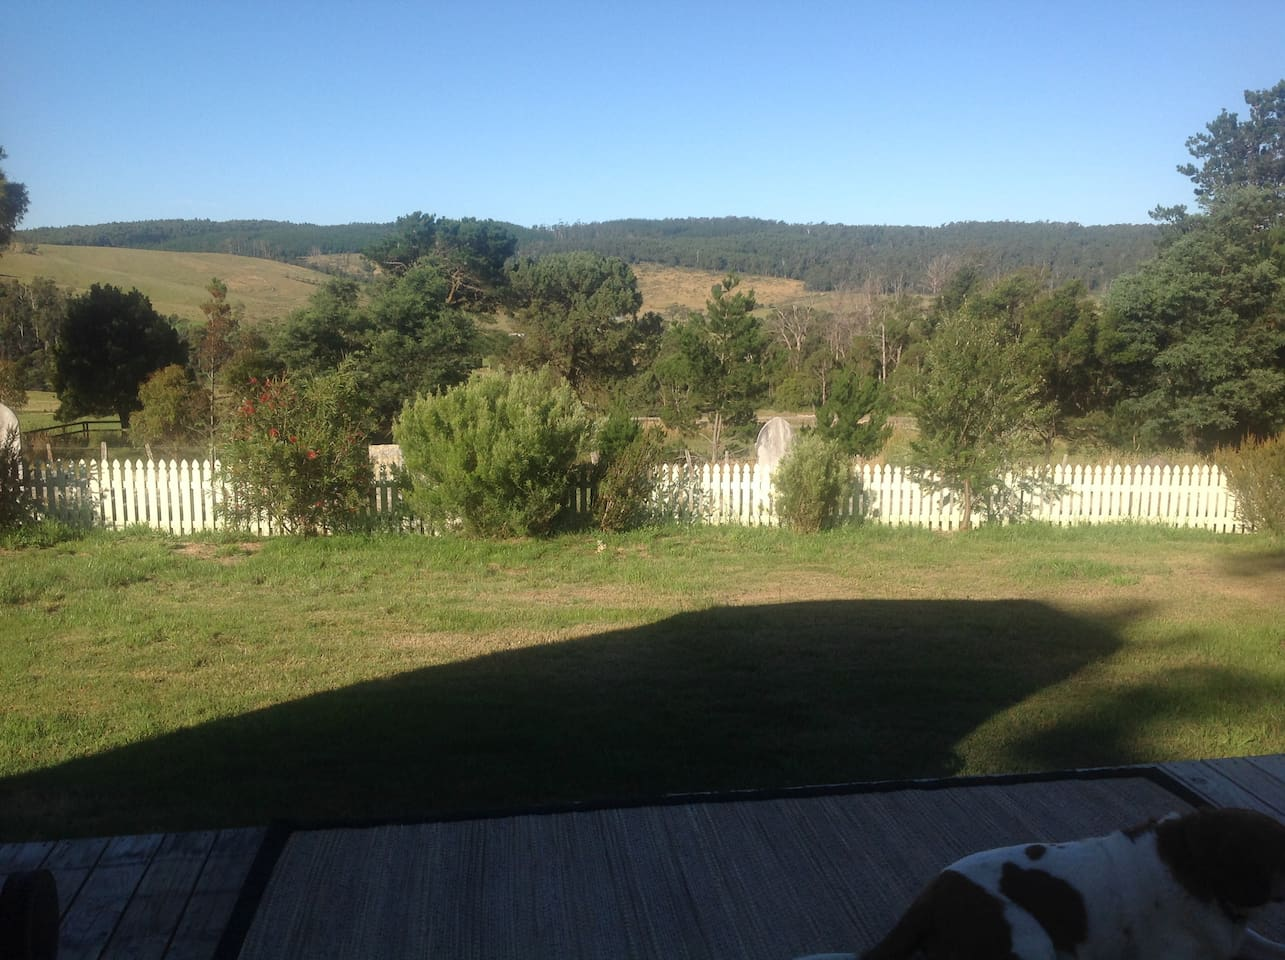 View from the caravan deck, overlooking historic cemetery, some war memorials in the cemetery.